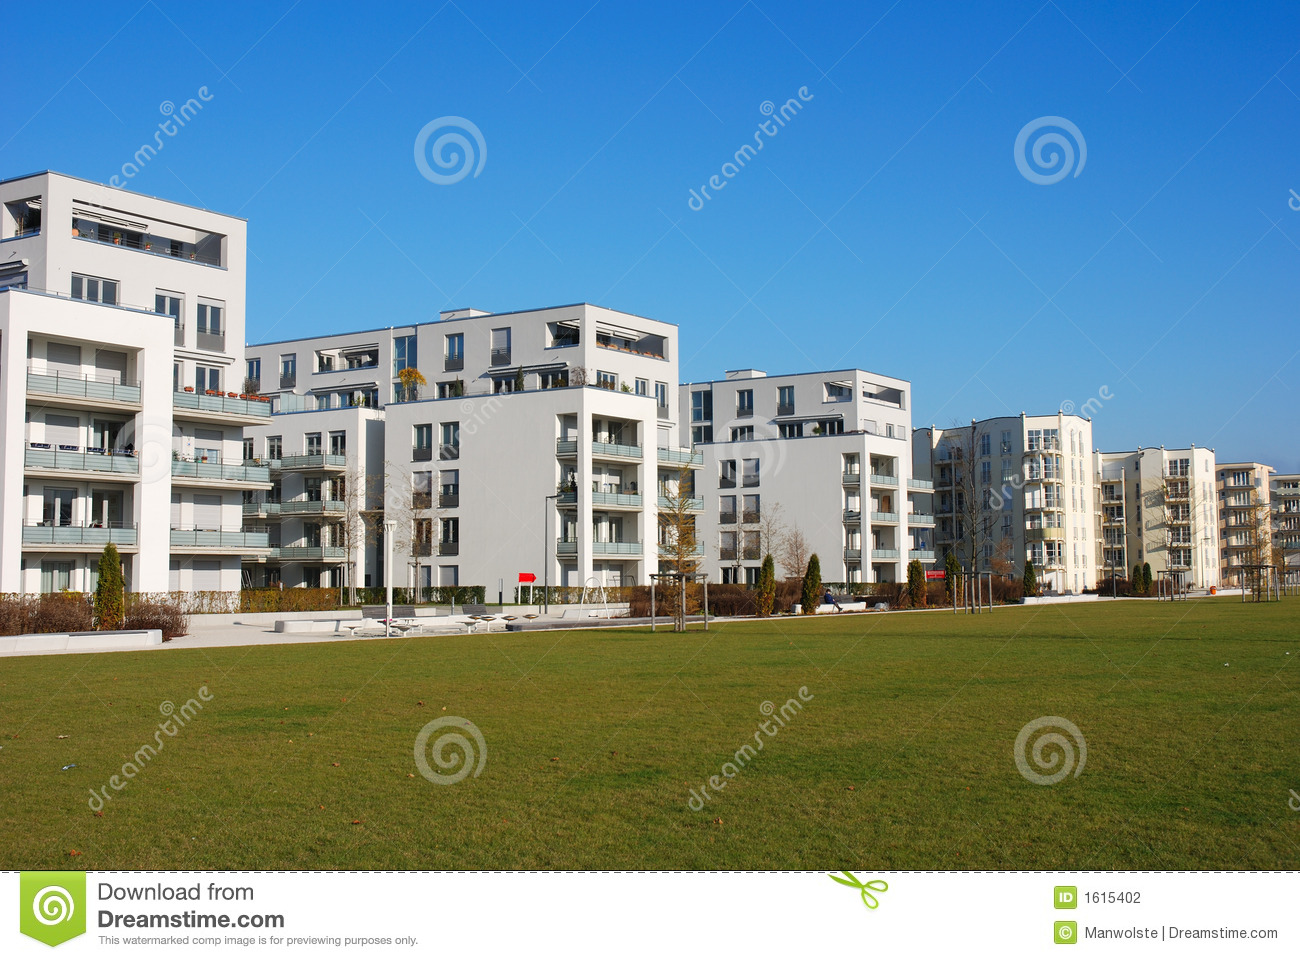 Immeubles modernes photographie stock image 1615402 for Image immeuble moderne